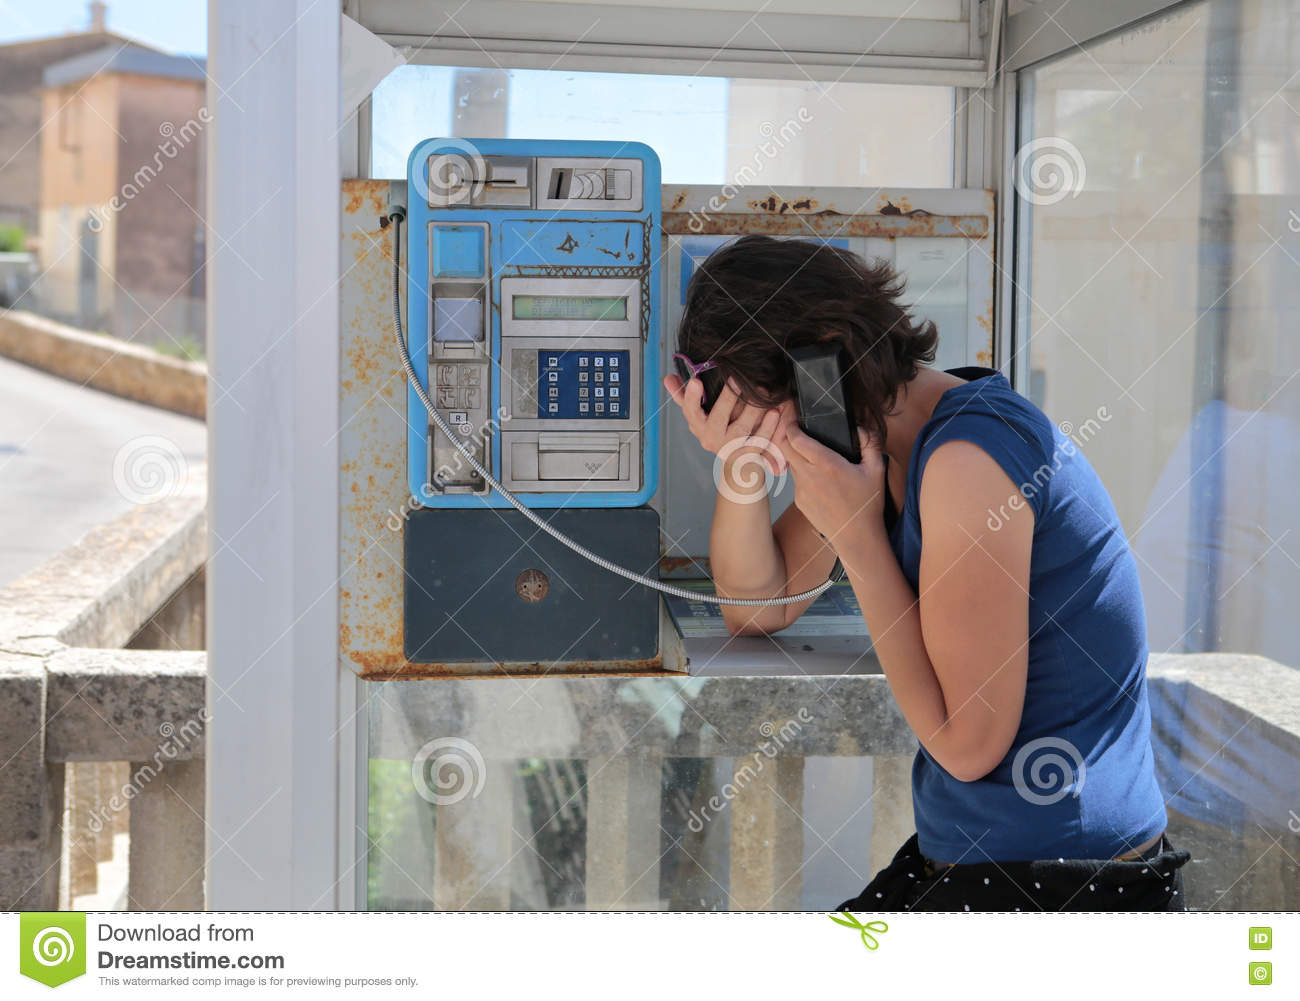 Girl gesturing sad on a phone cabin stock photography for The girl in the cabin